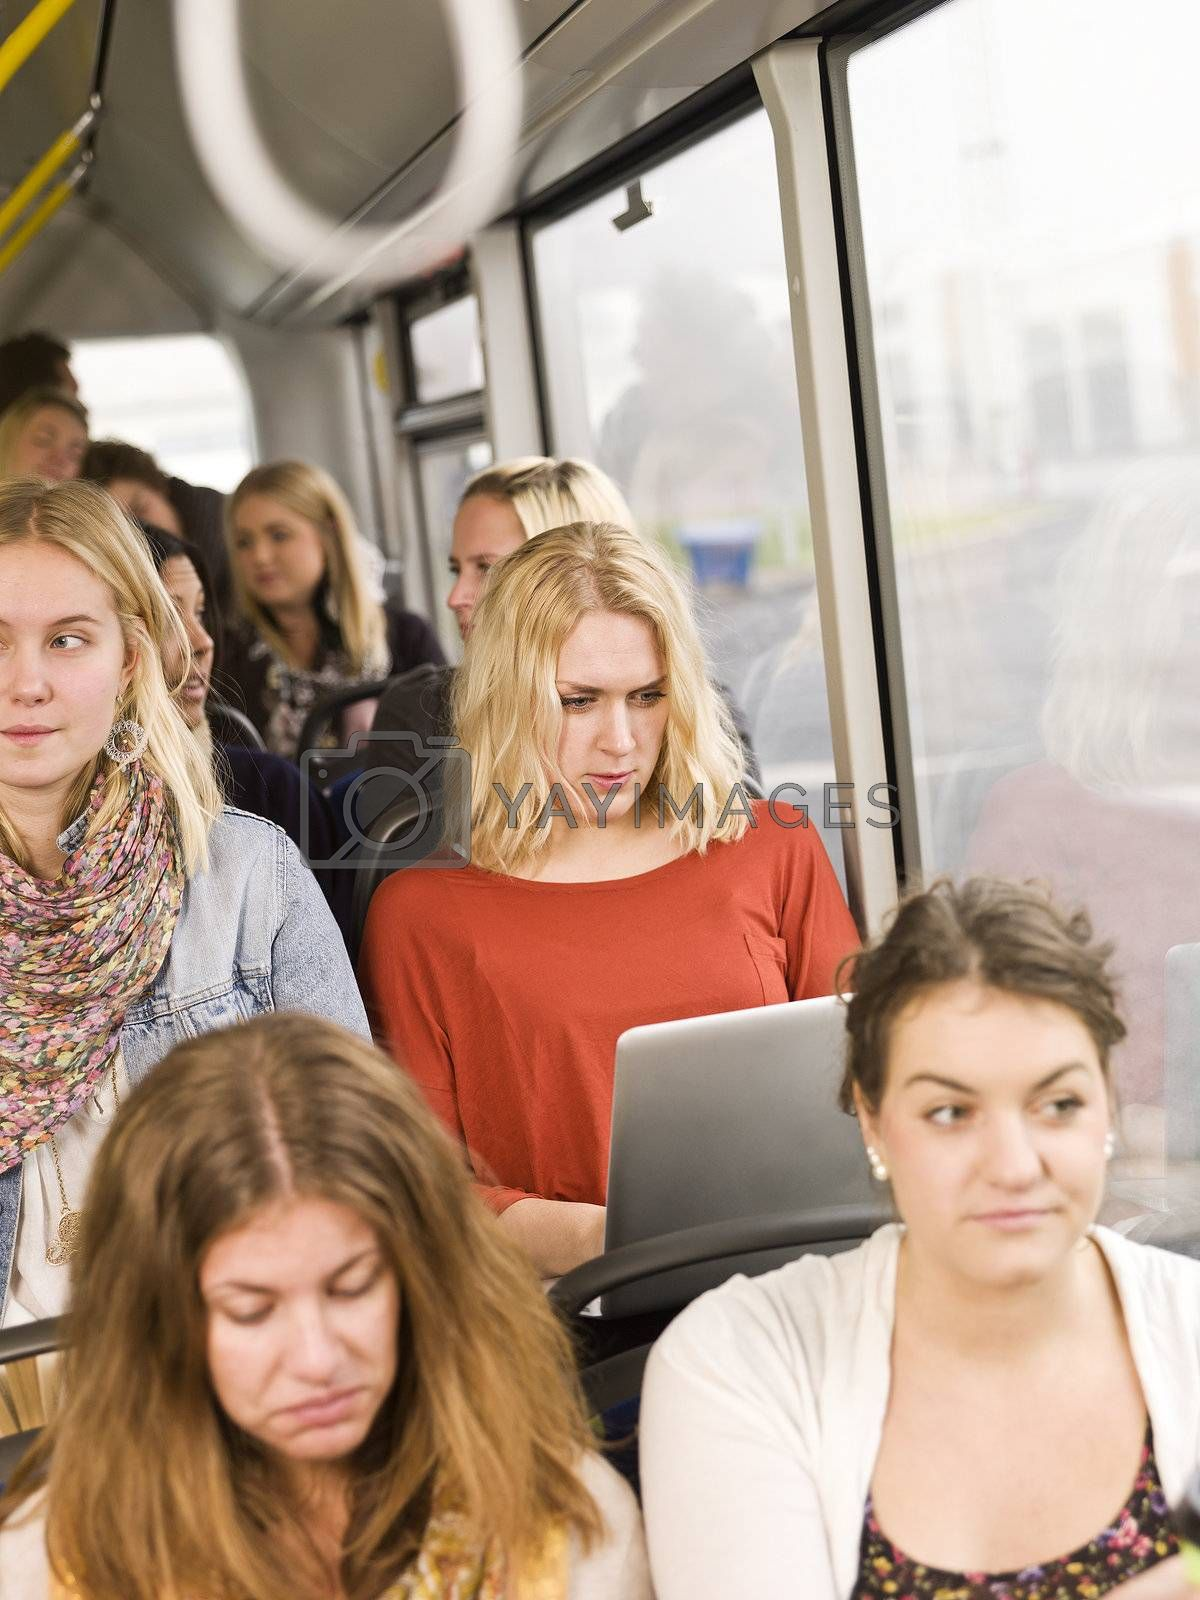 Serious woman on the bus with a computer